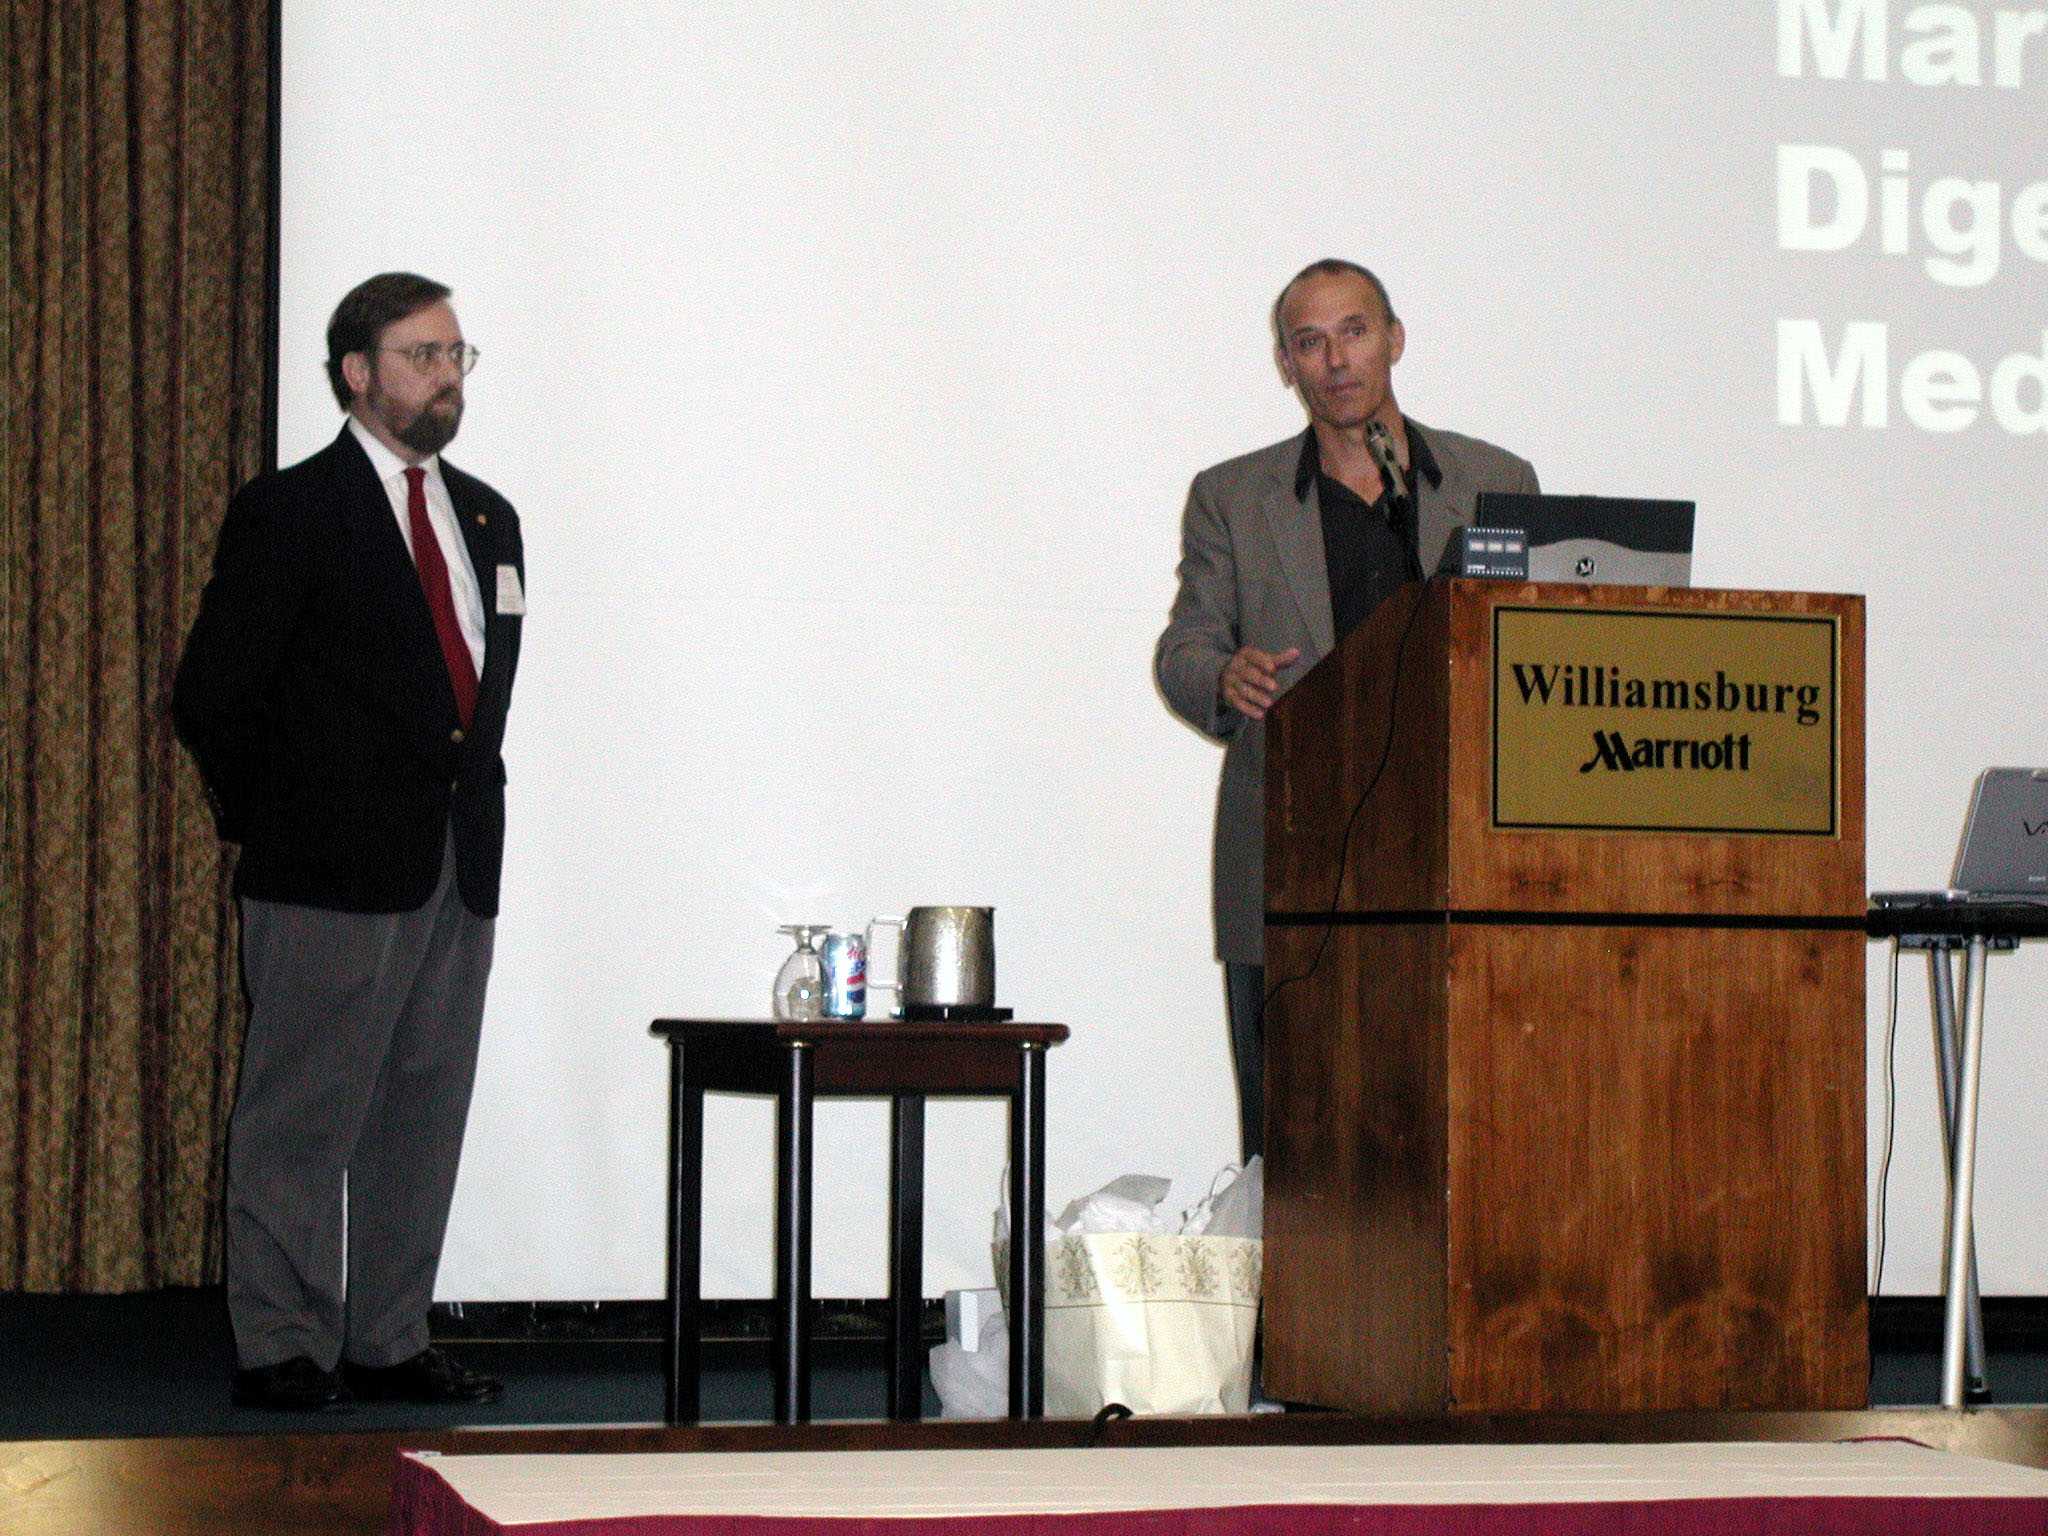 Dr. Daniel J. Pambianco, ACG Governor for Virginia, addresses attendees at the 2005 VGS Postgraduate Course